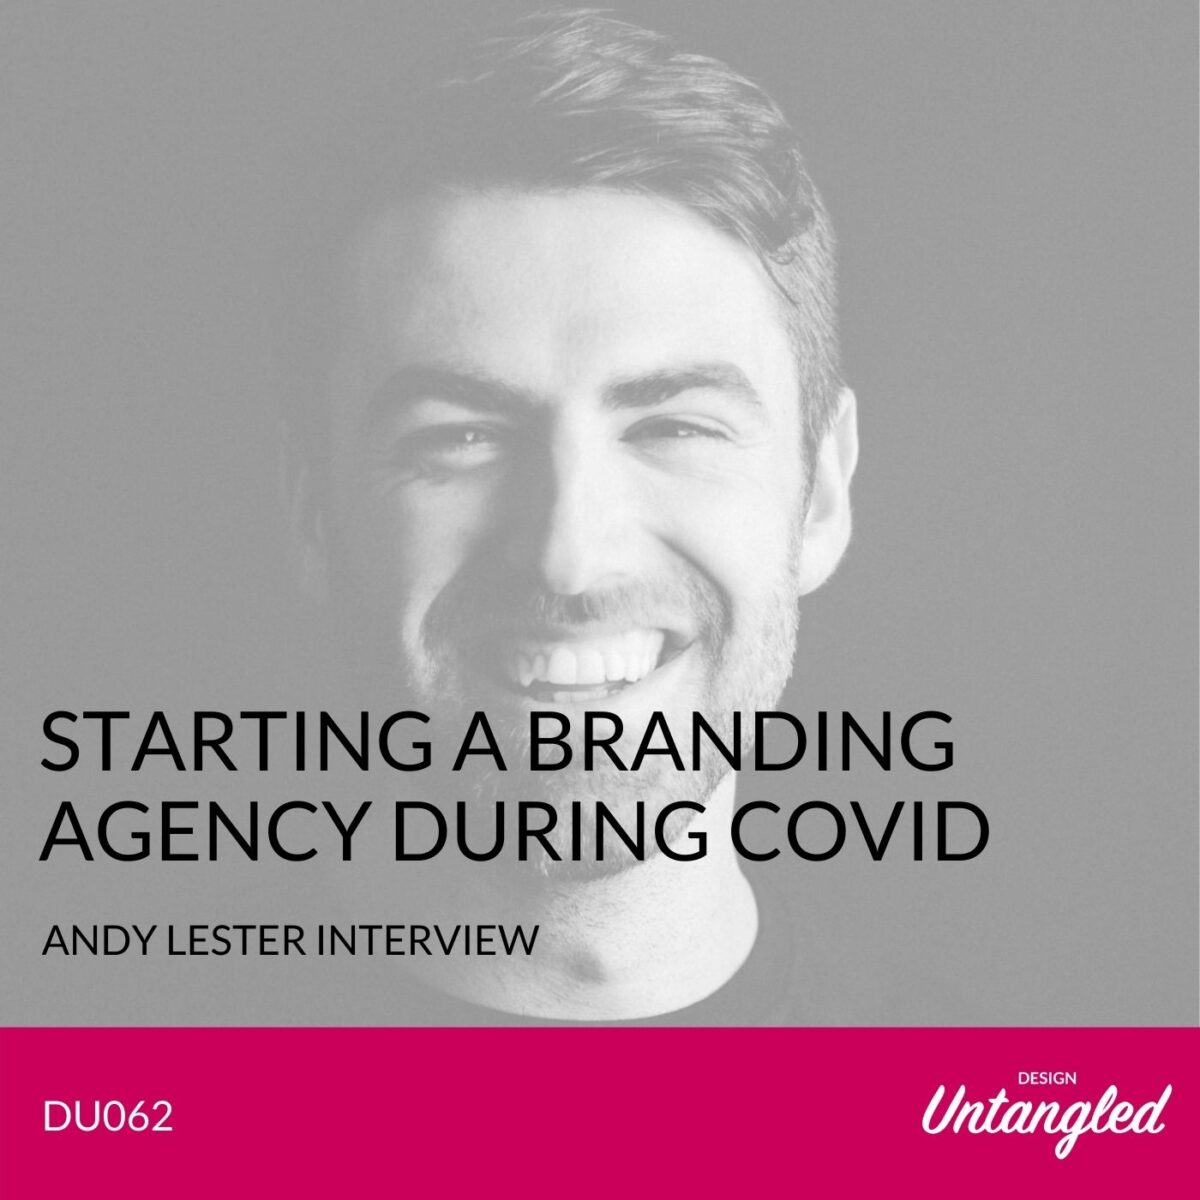 DU062 - Starting a Branding Agency During COVID